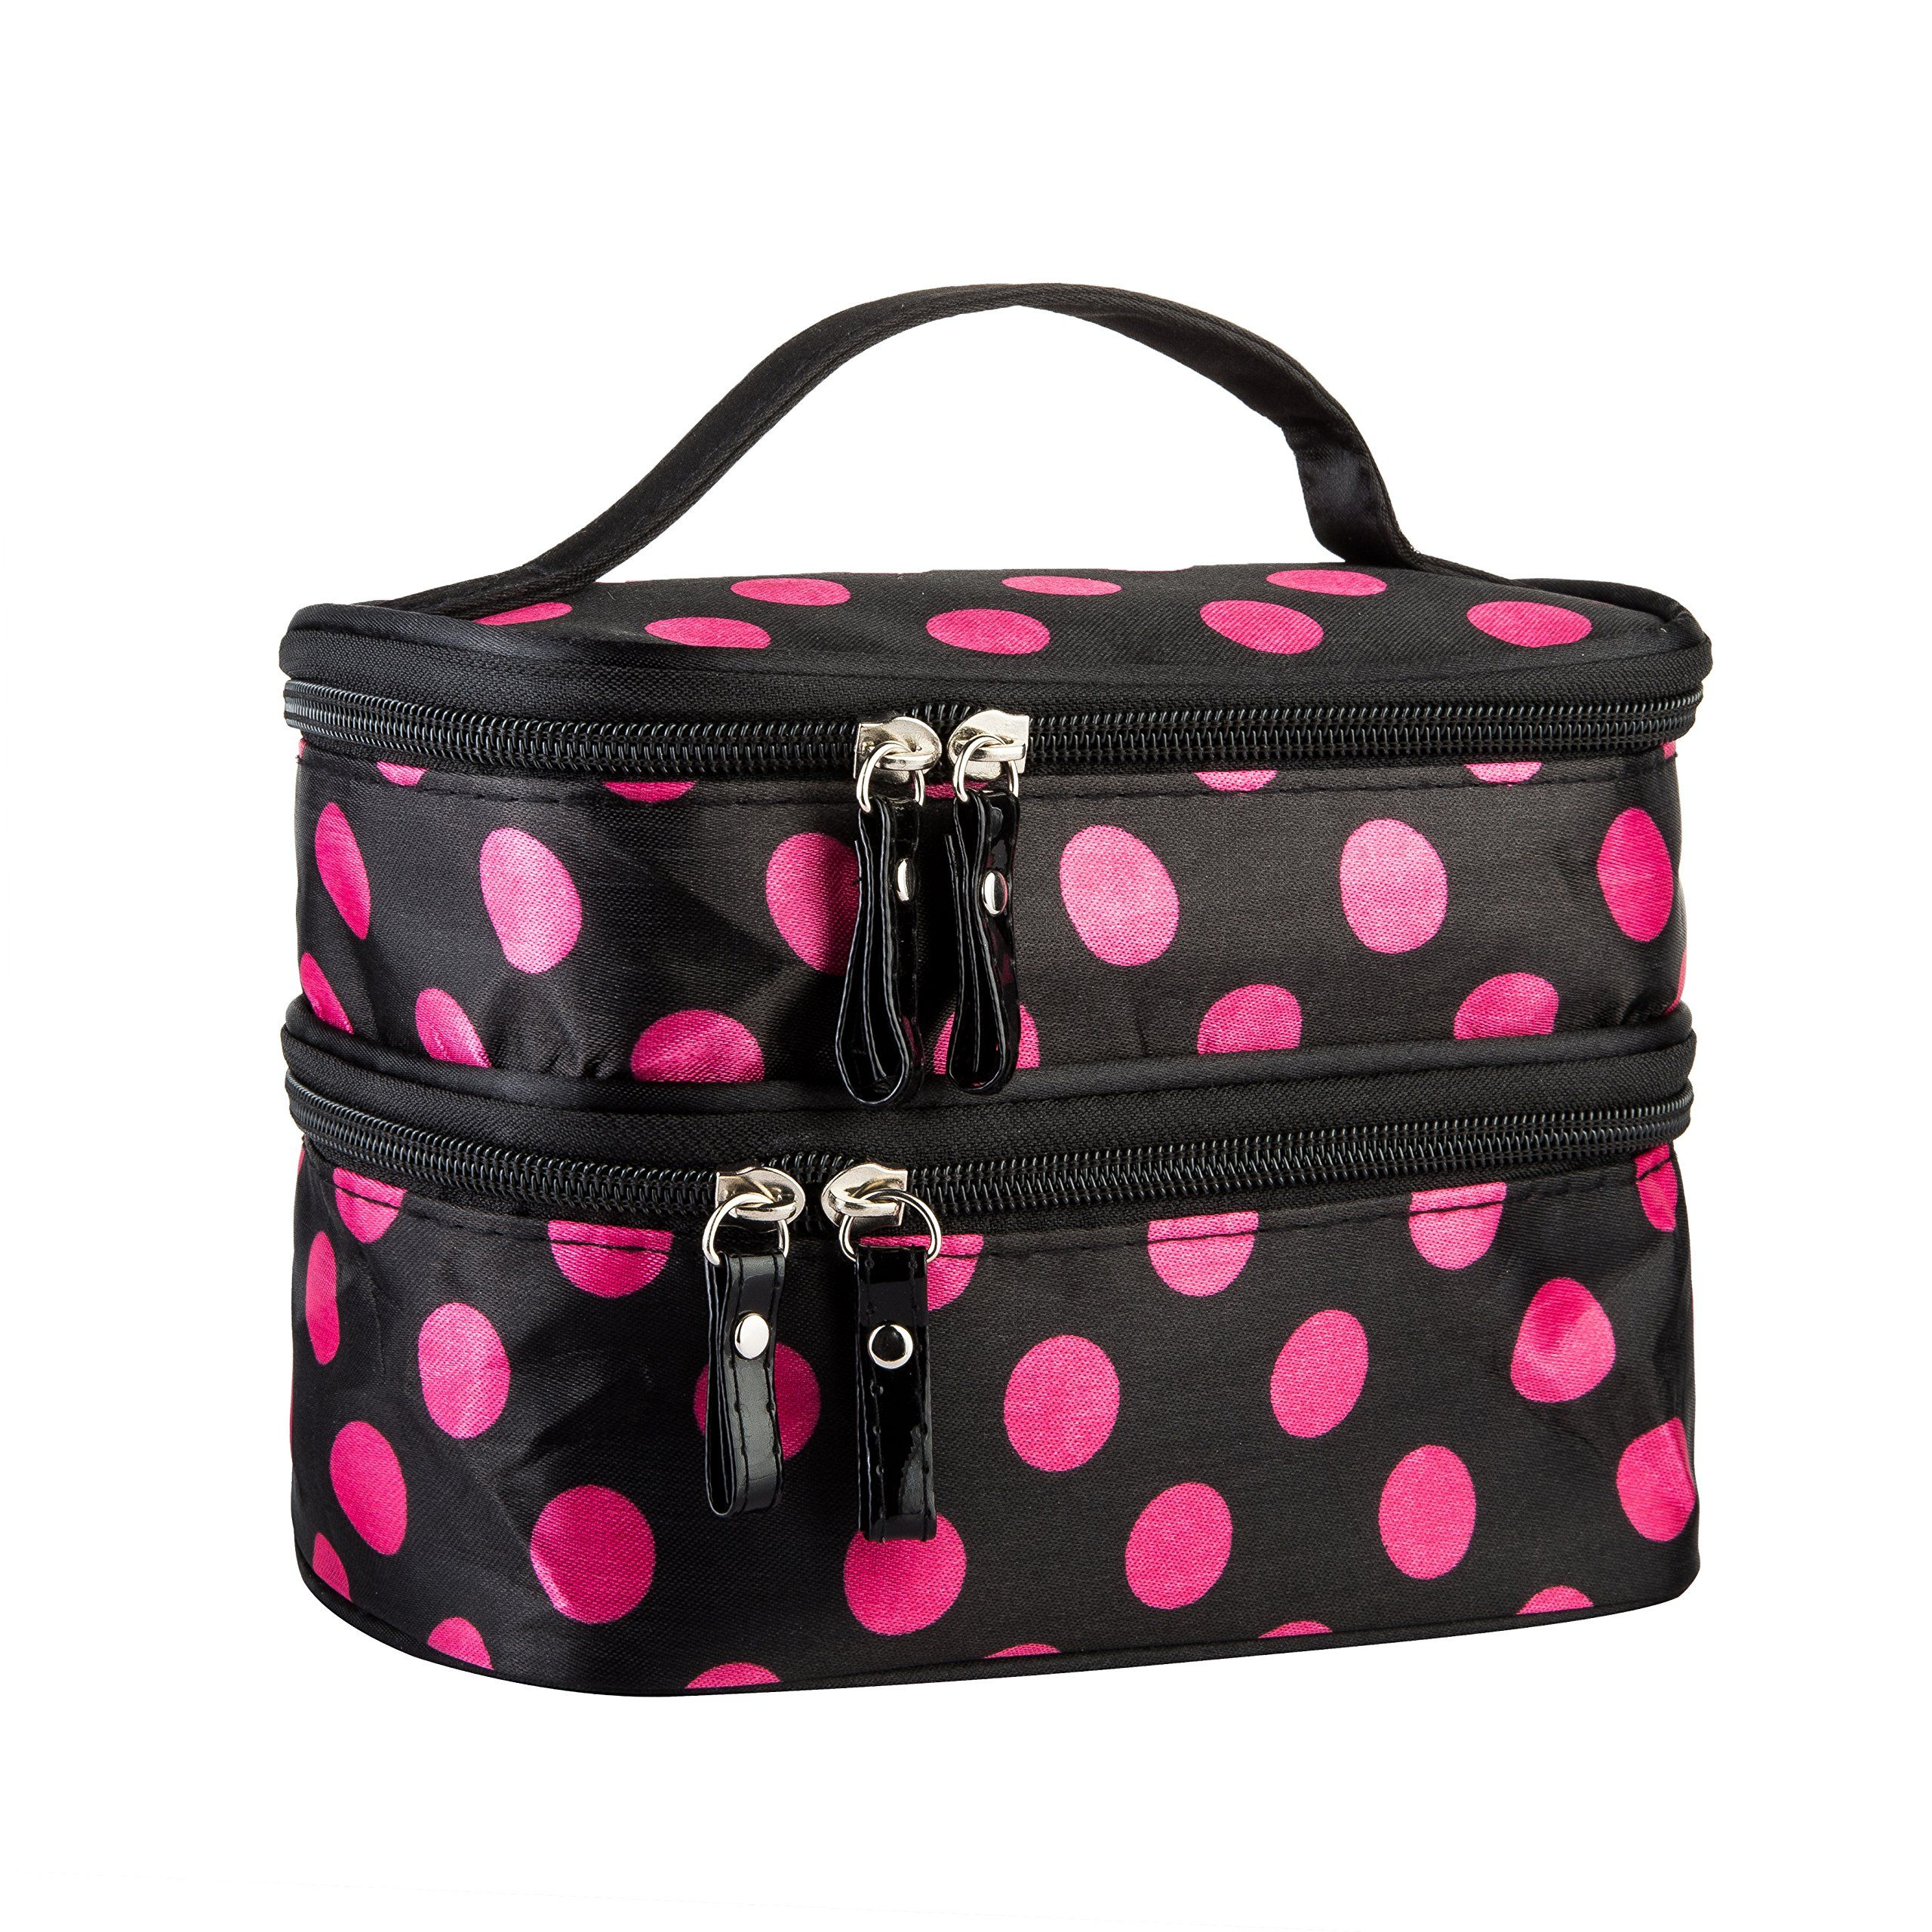 c06fc8fc8009 Cosmetic Bag MakeUp Case Double Layer Dot Pattern Portable Waterproof Wear  Resistance Durable With 2 Zipper Holder With Mirror Travel Toiletry Bag  Organizer ...